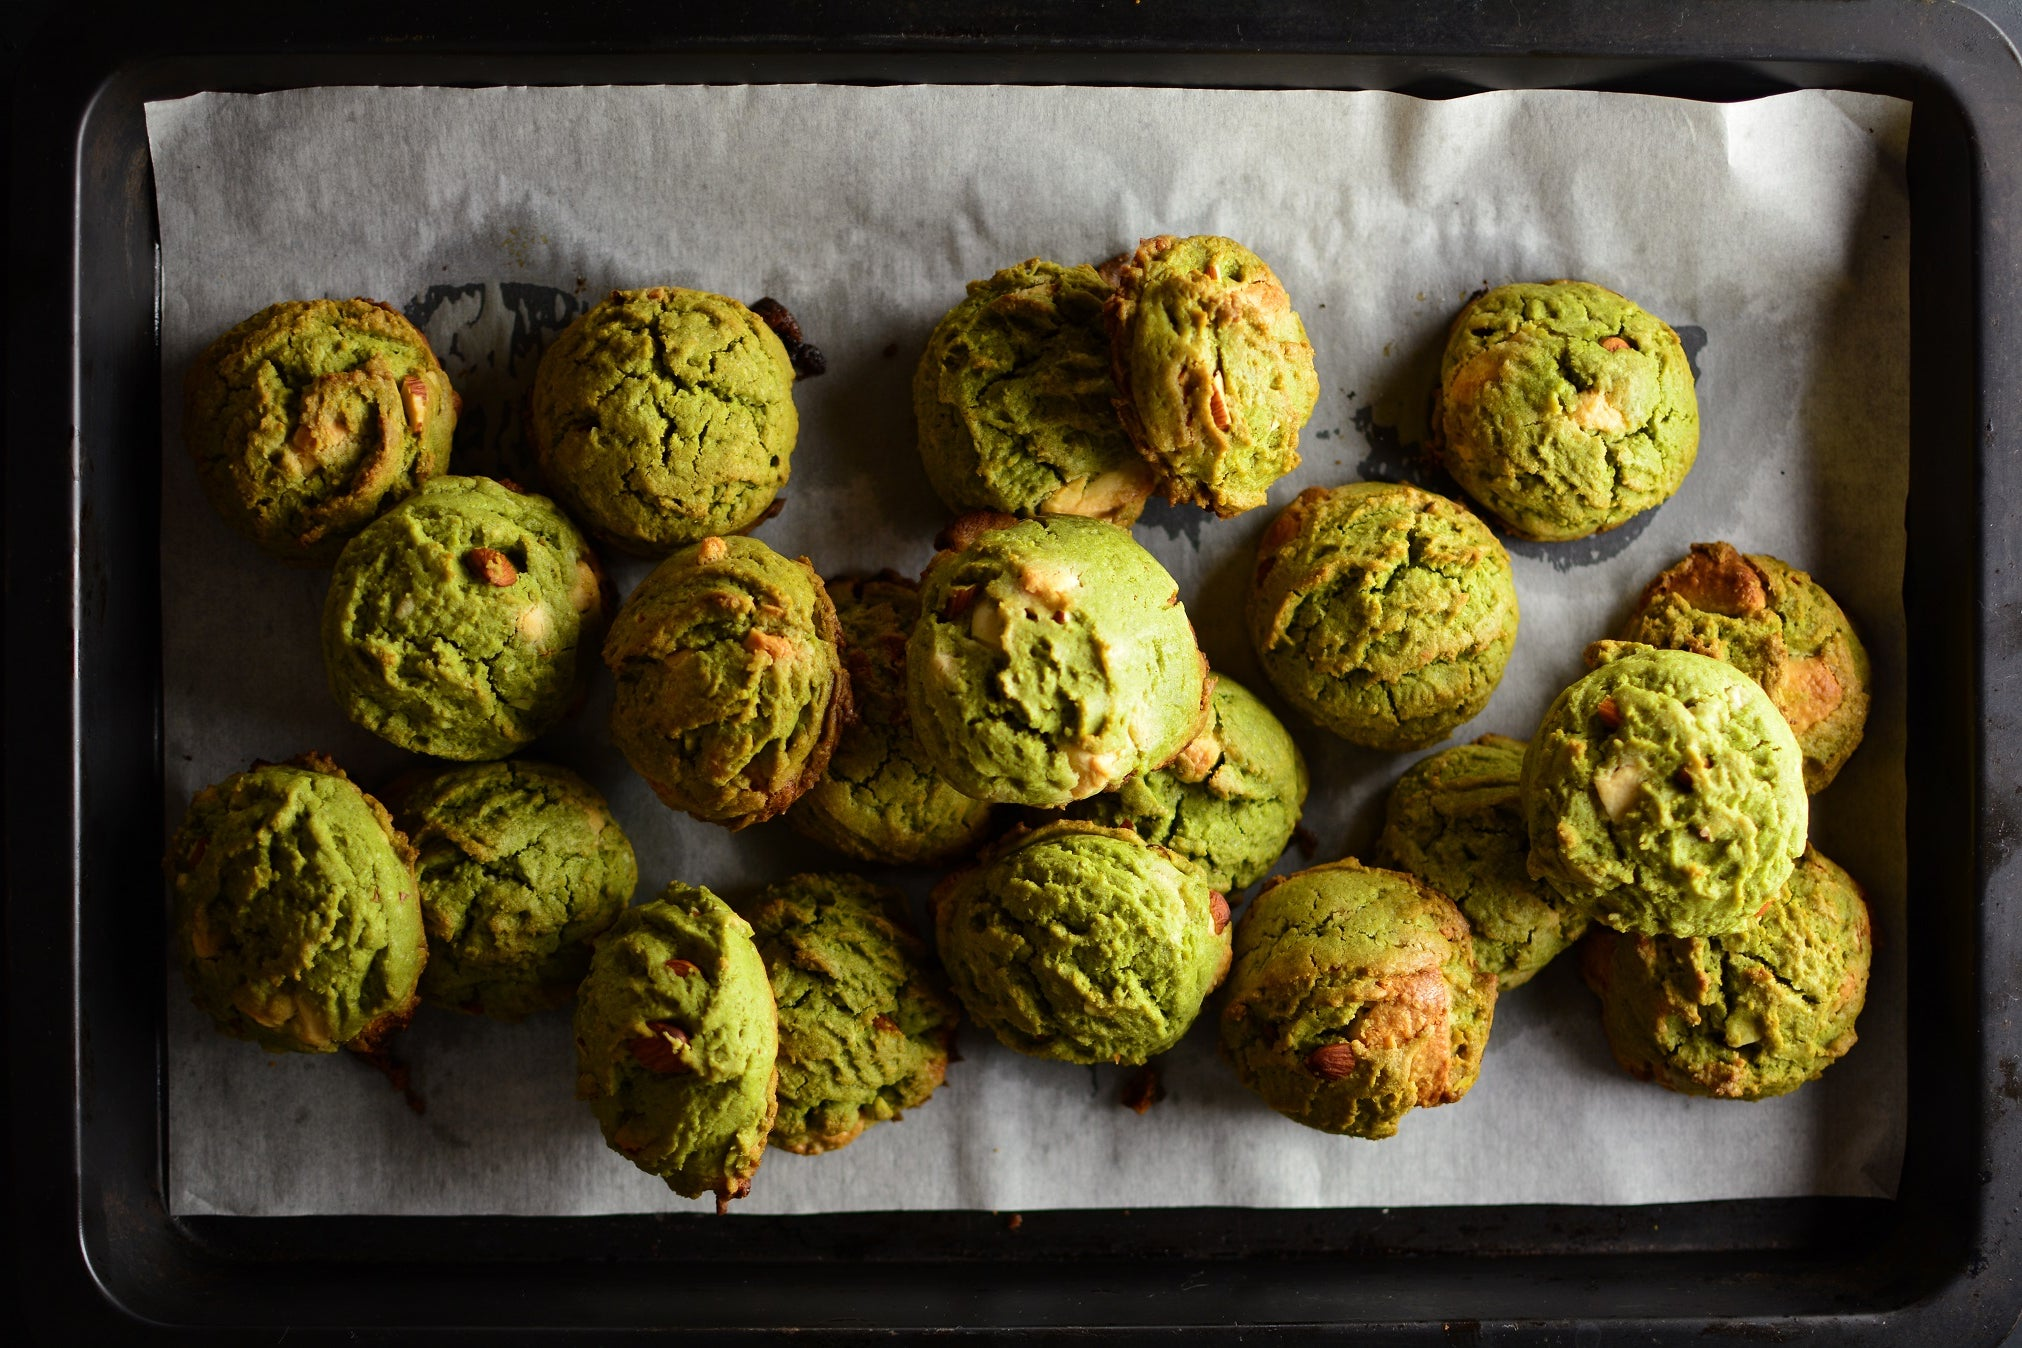 Matcha Cookies With Cinnamon, Almonds and Chocolate Chunks